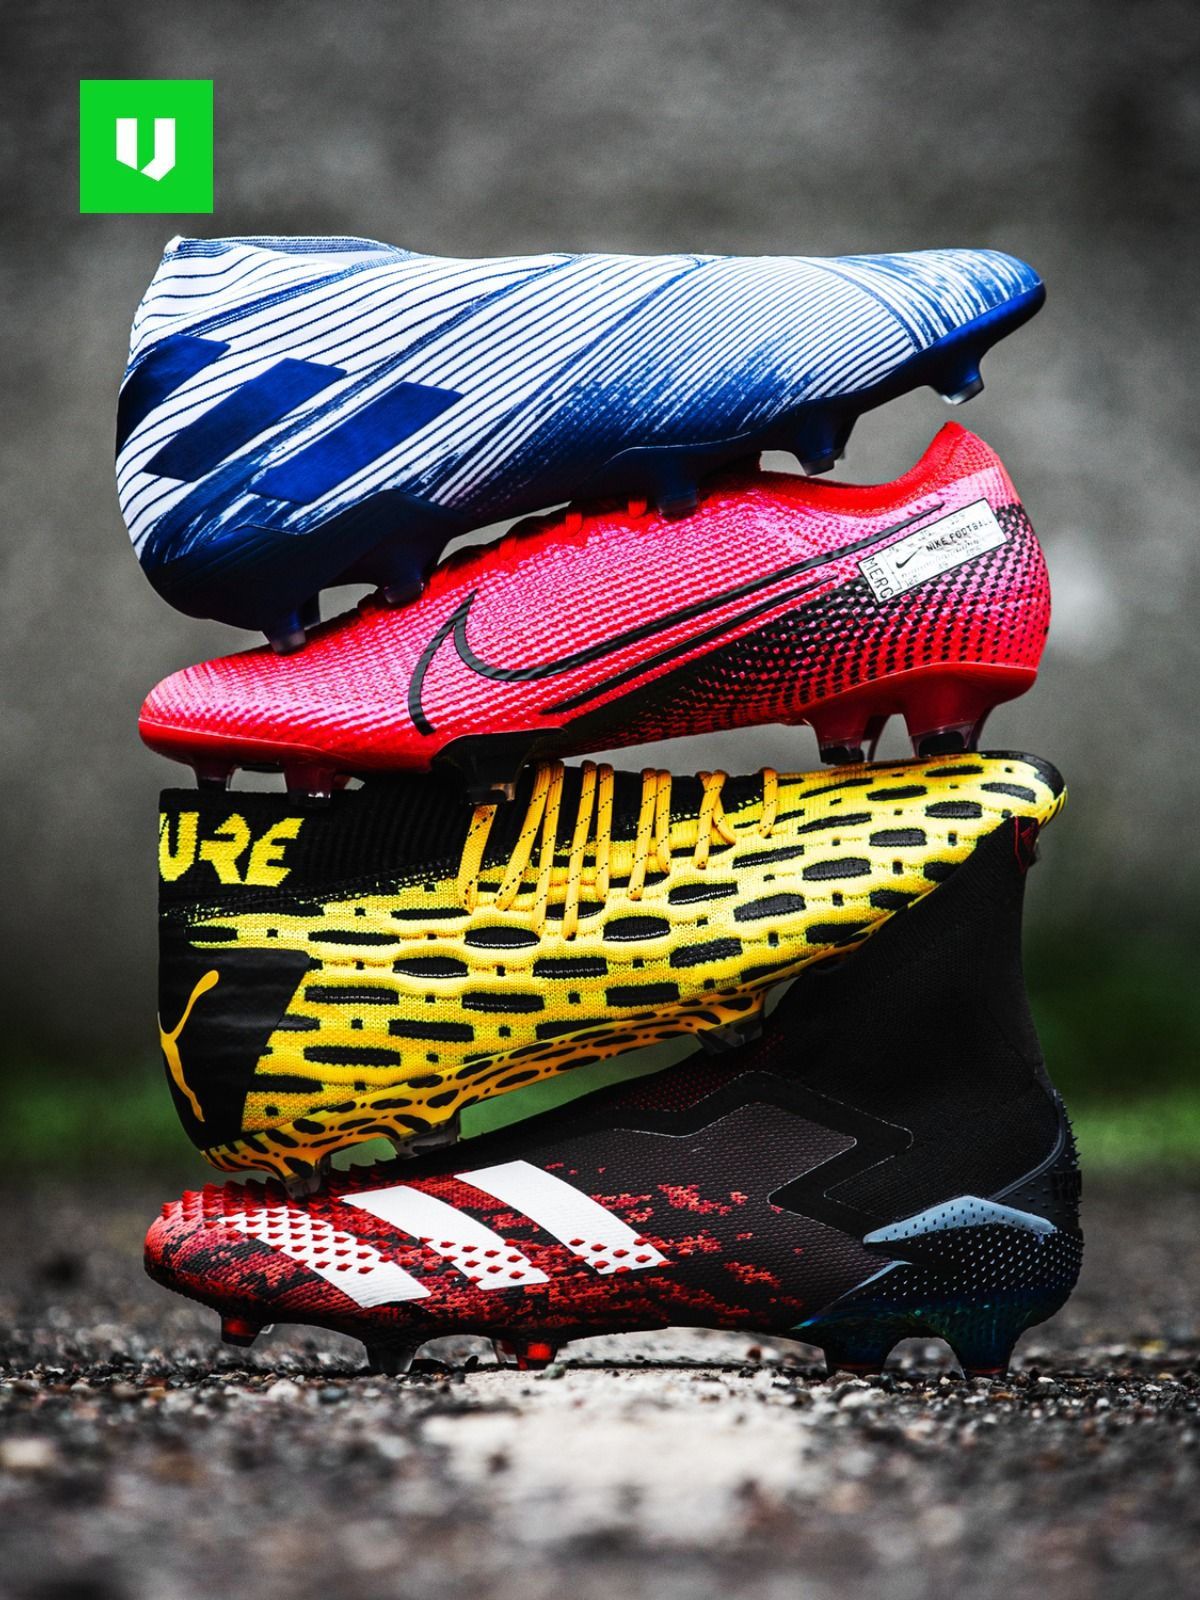 The Latest Football Boots Colourful In 2020 Nike Football Boots Puma Football Boots Latest Football Boots